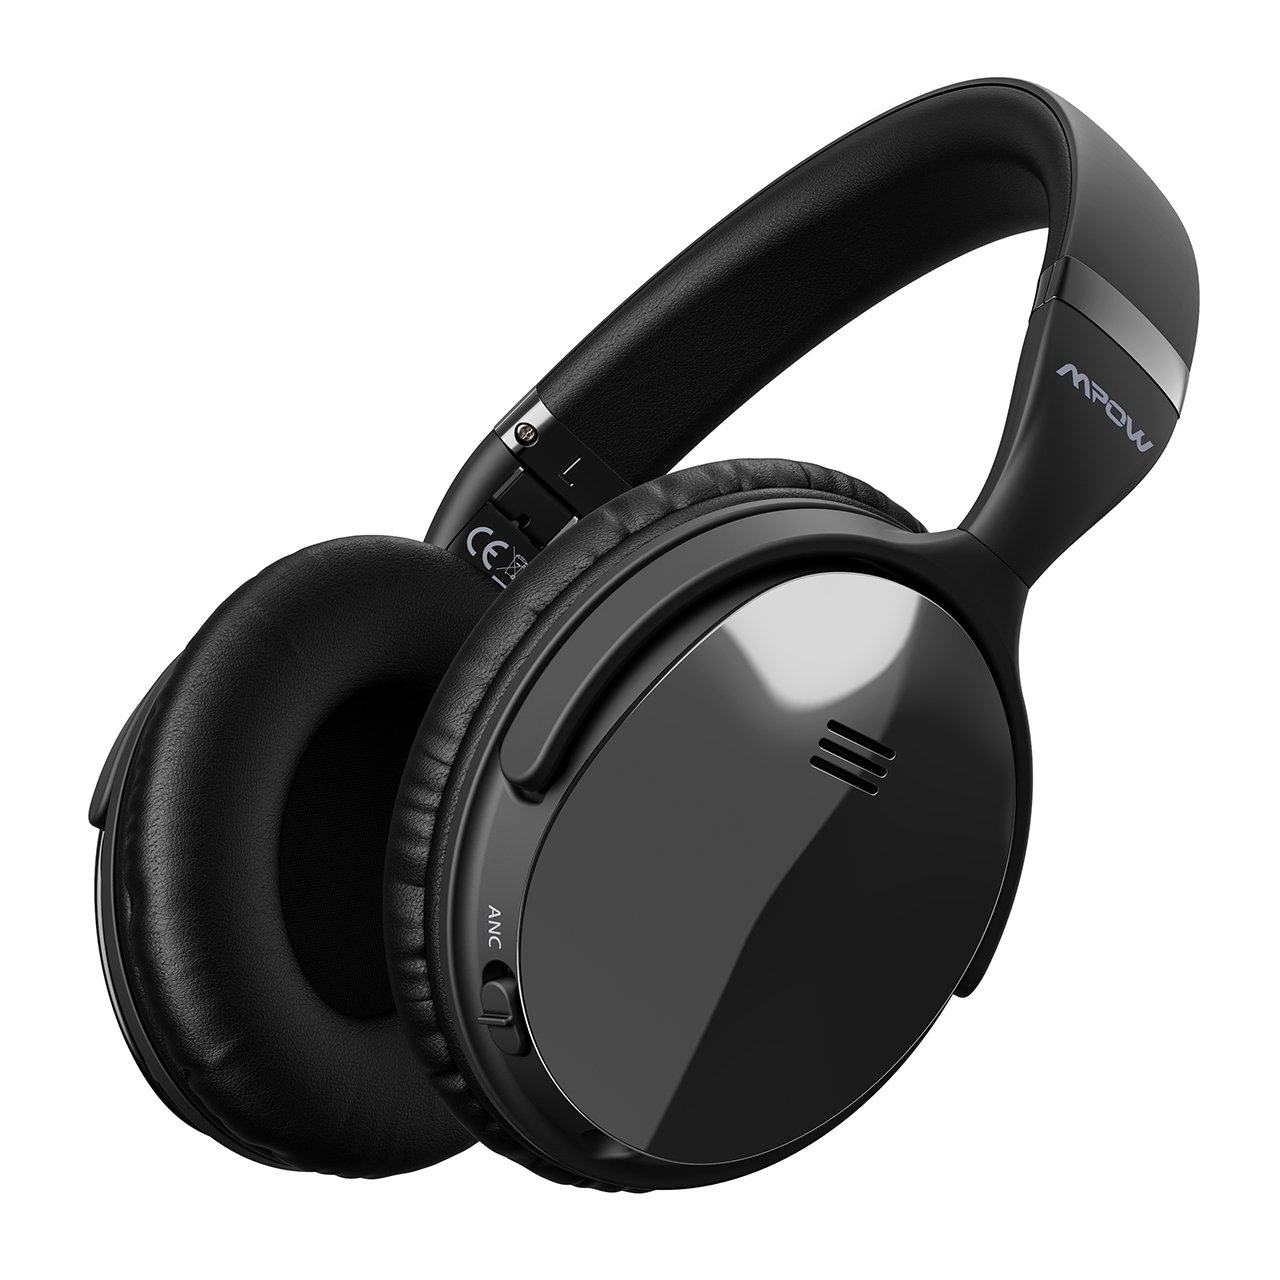 Mpow H5 [2018 Upgrade] Active Noise Cancelling Bluetooth Headphones Microphone Deep Bass Wireless Headphones Over Ear, Comfortable Protein Earpads Travel Work Computer Home